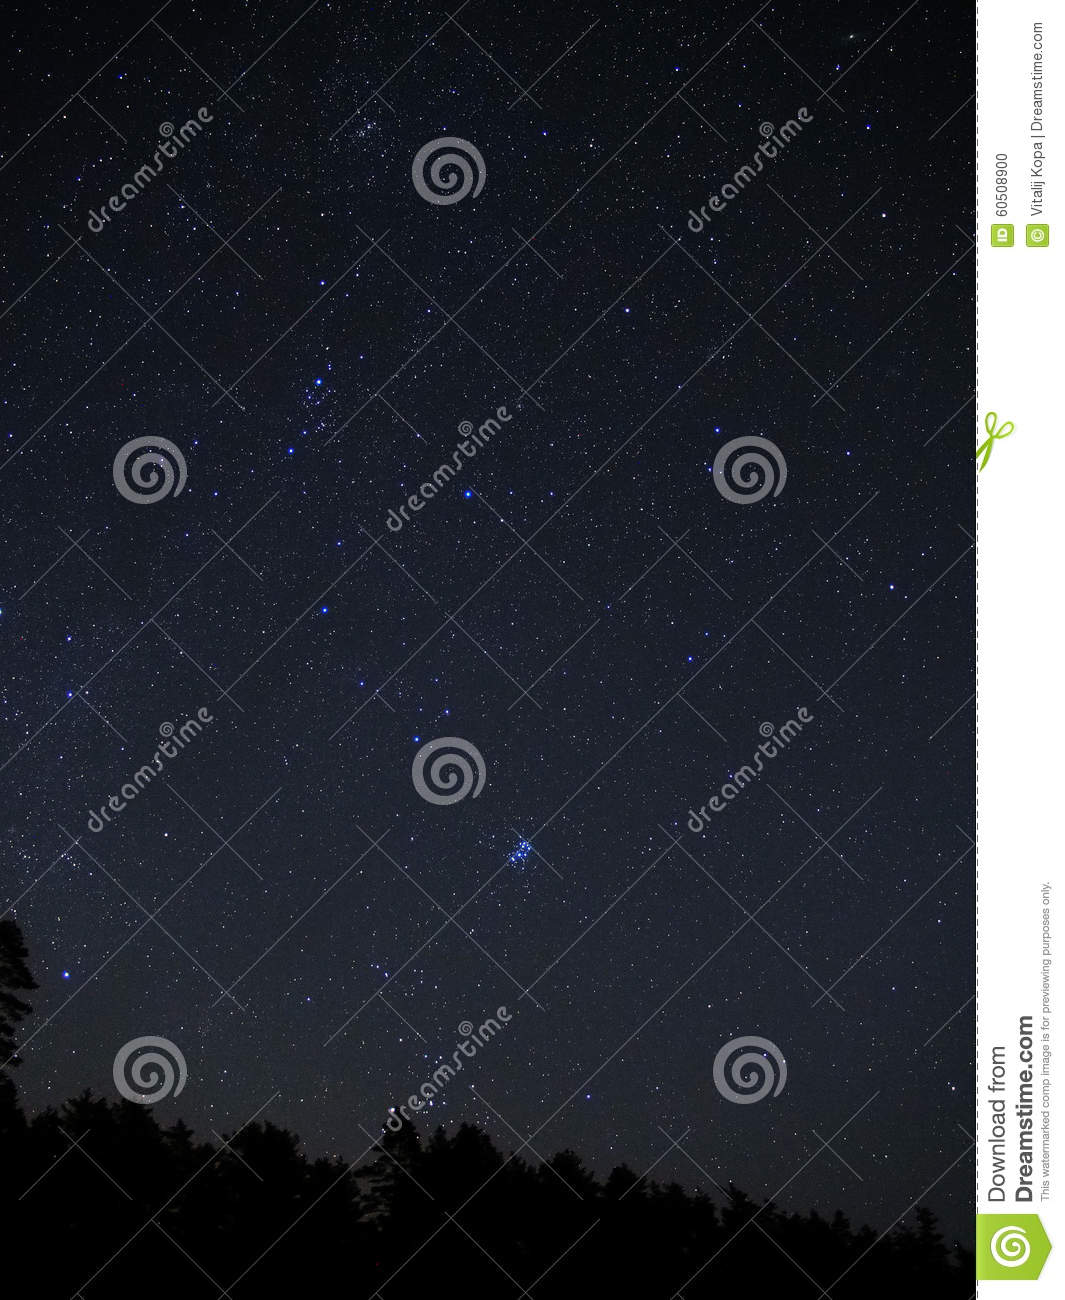 Night sky stars and Pleiades cluster M45 over forest